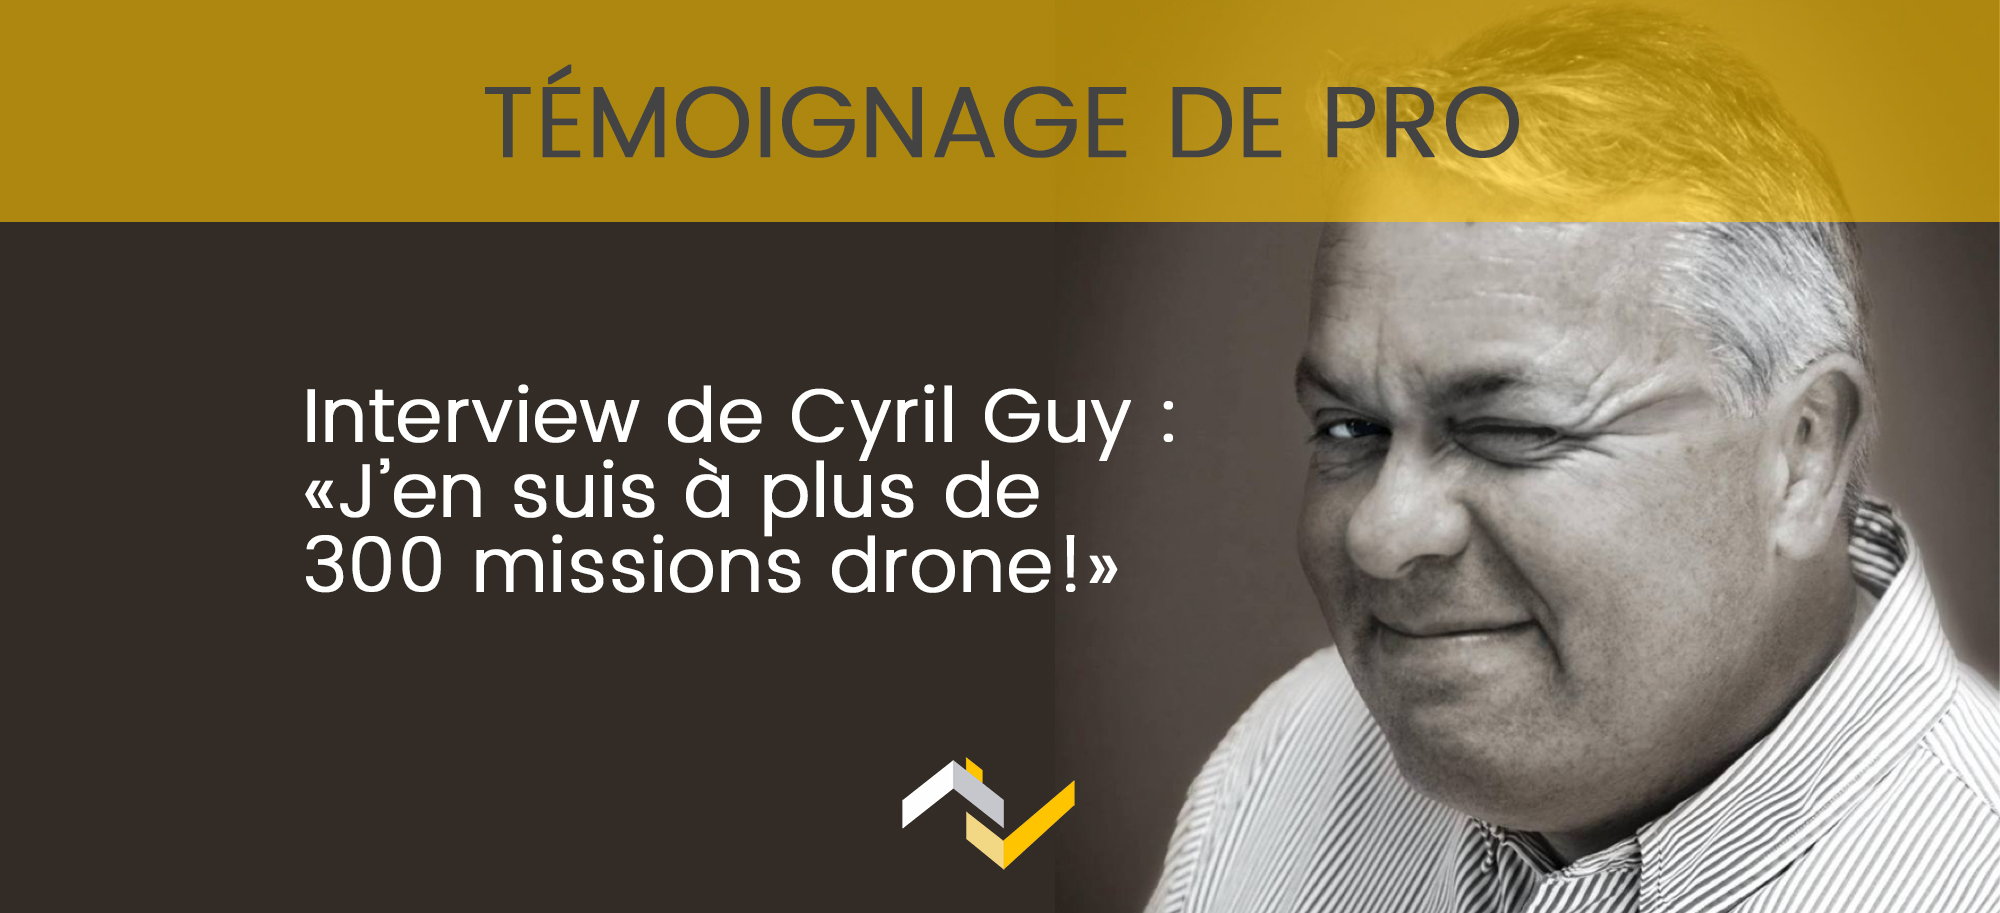 Interview de Cyril Guy :